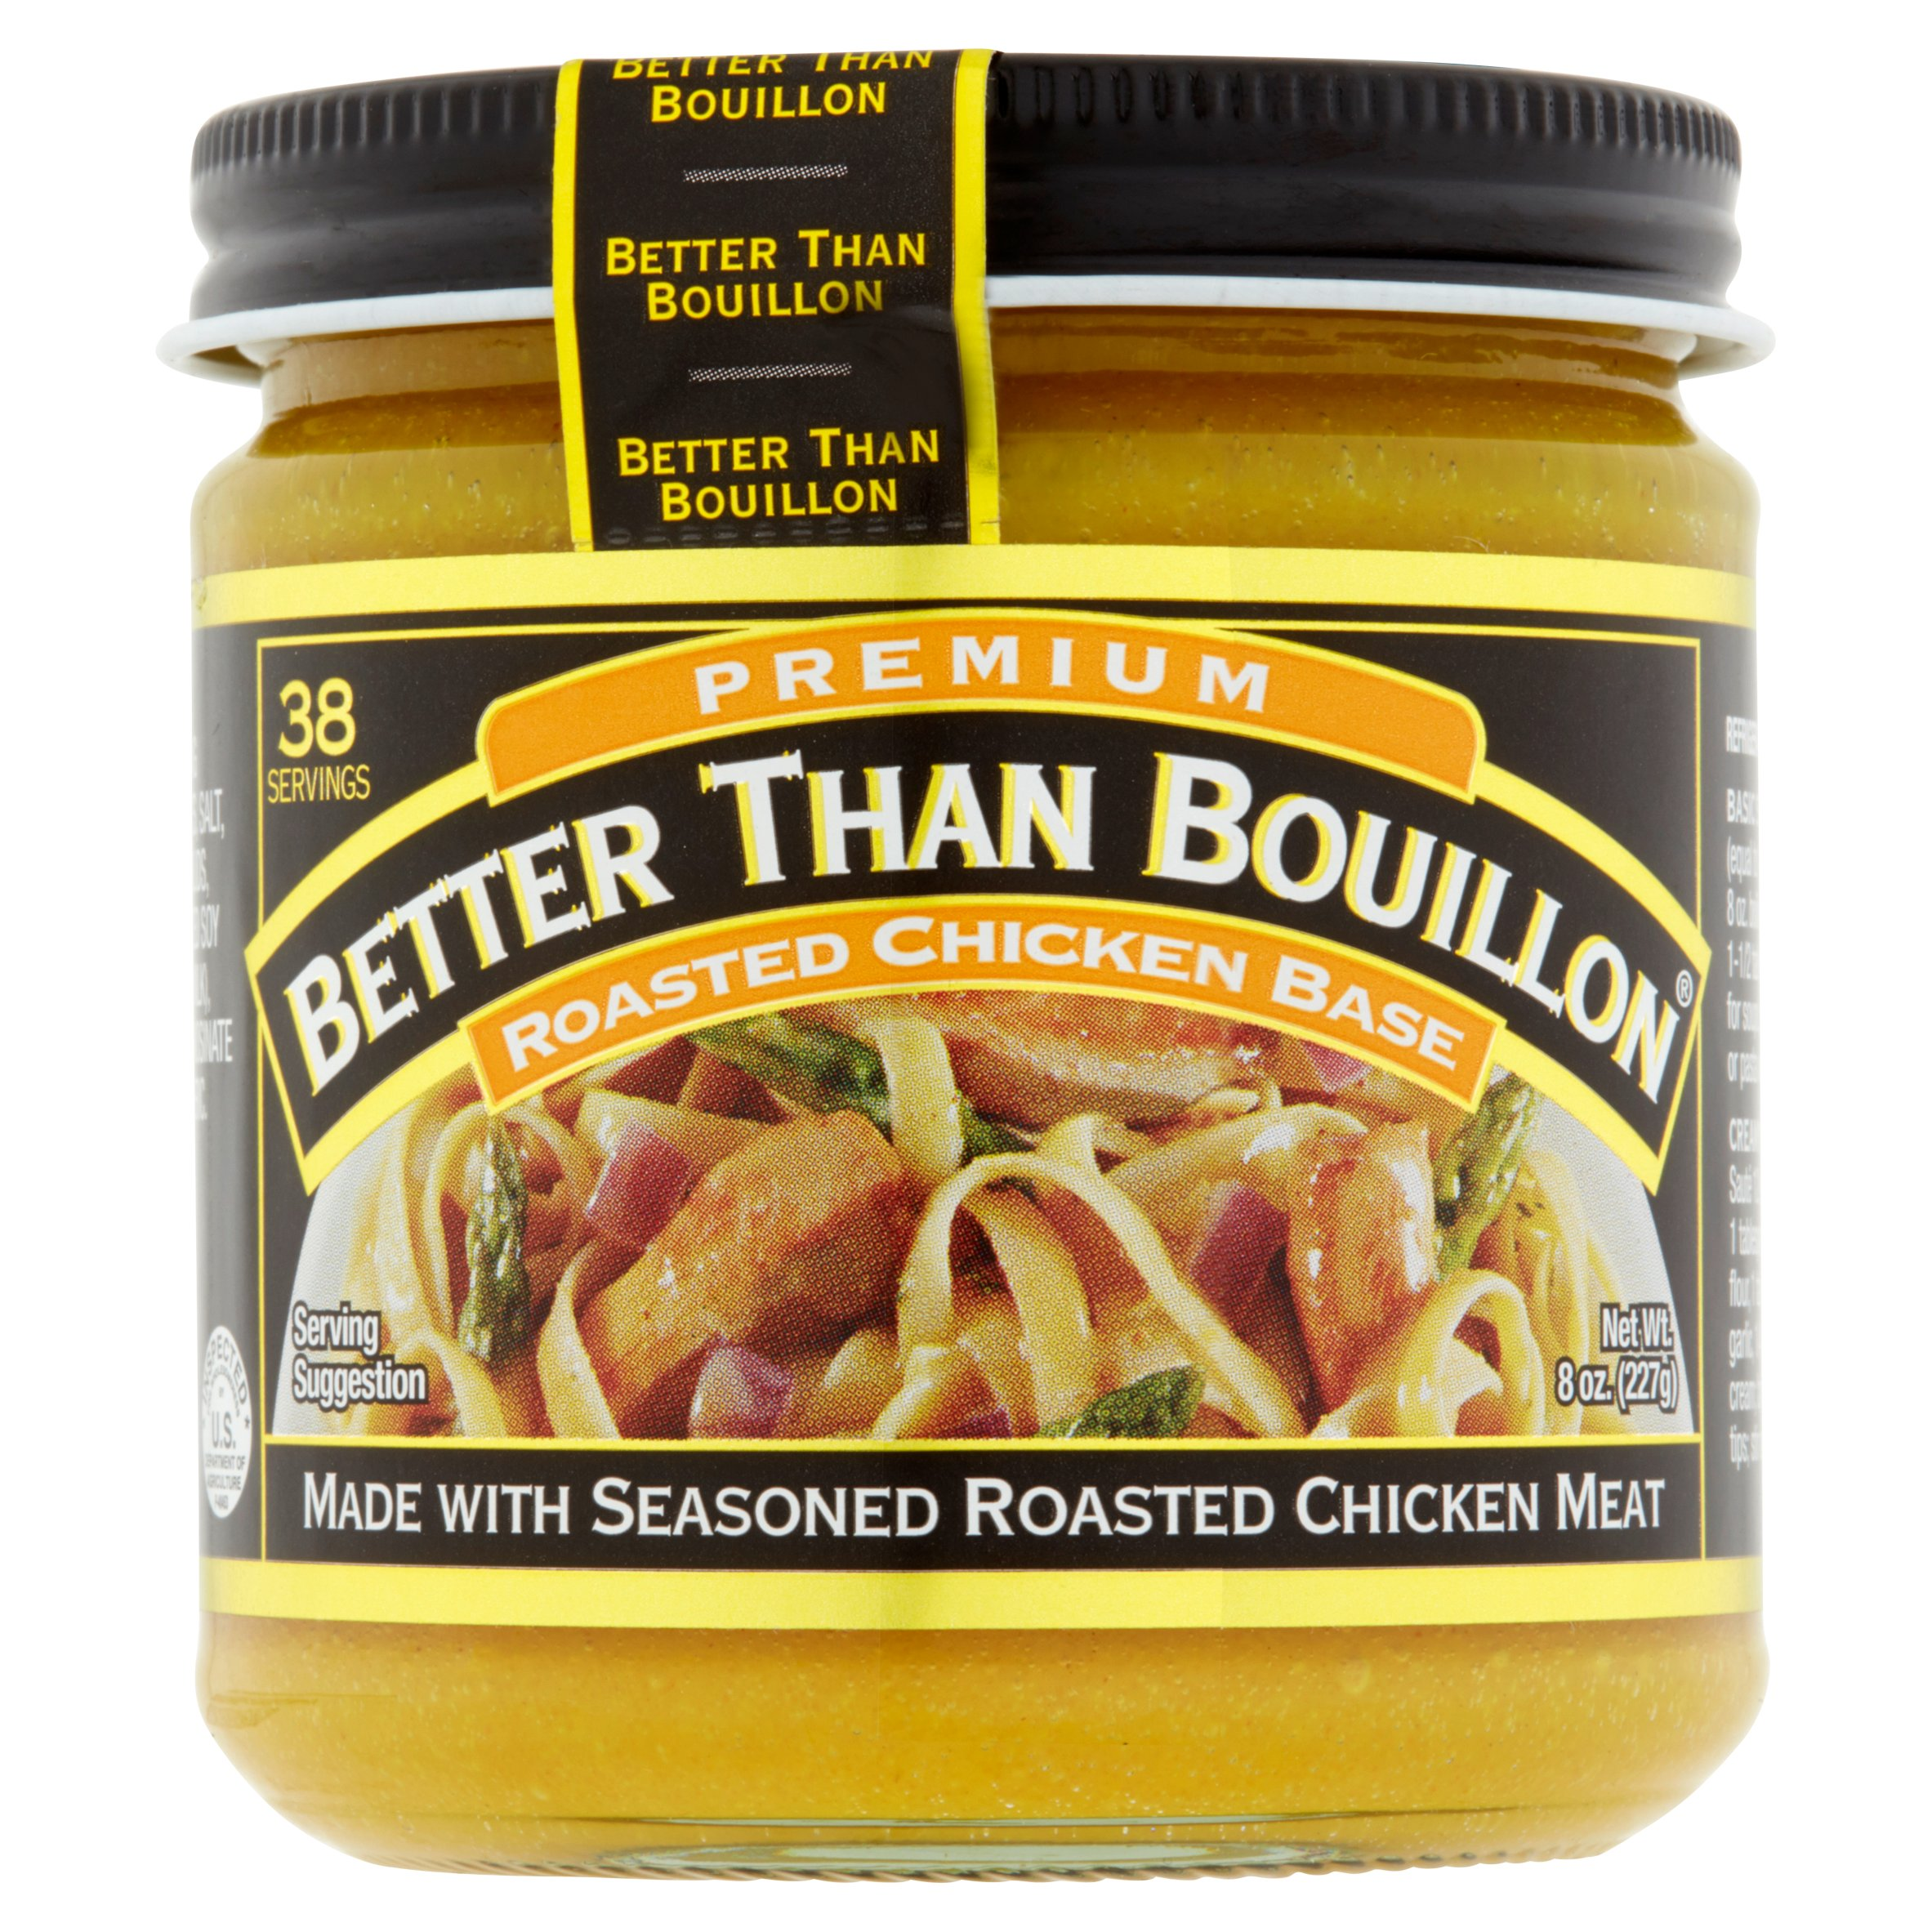 Better Than Bouillon Premium Roasted Chicken Base, 8 oz